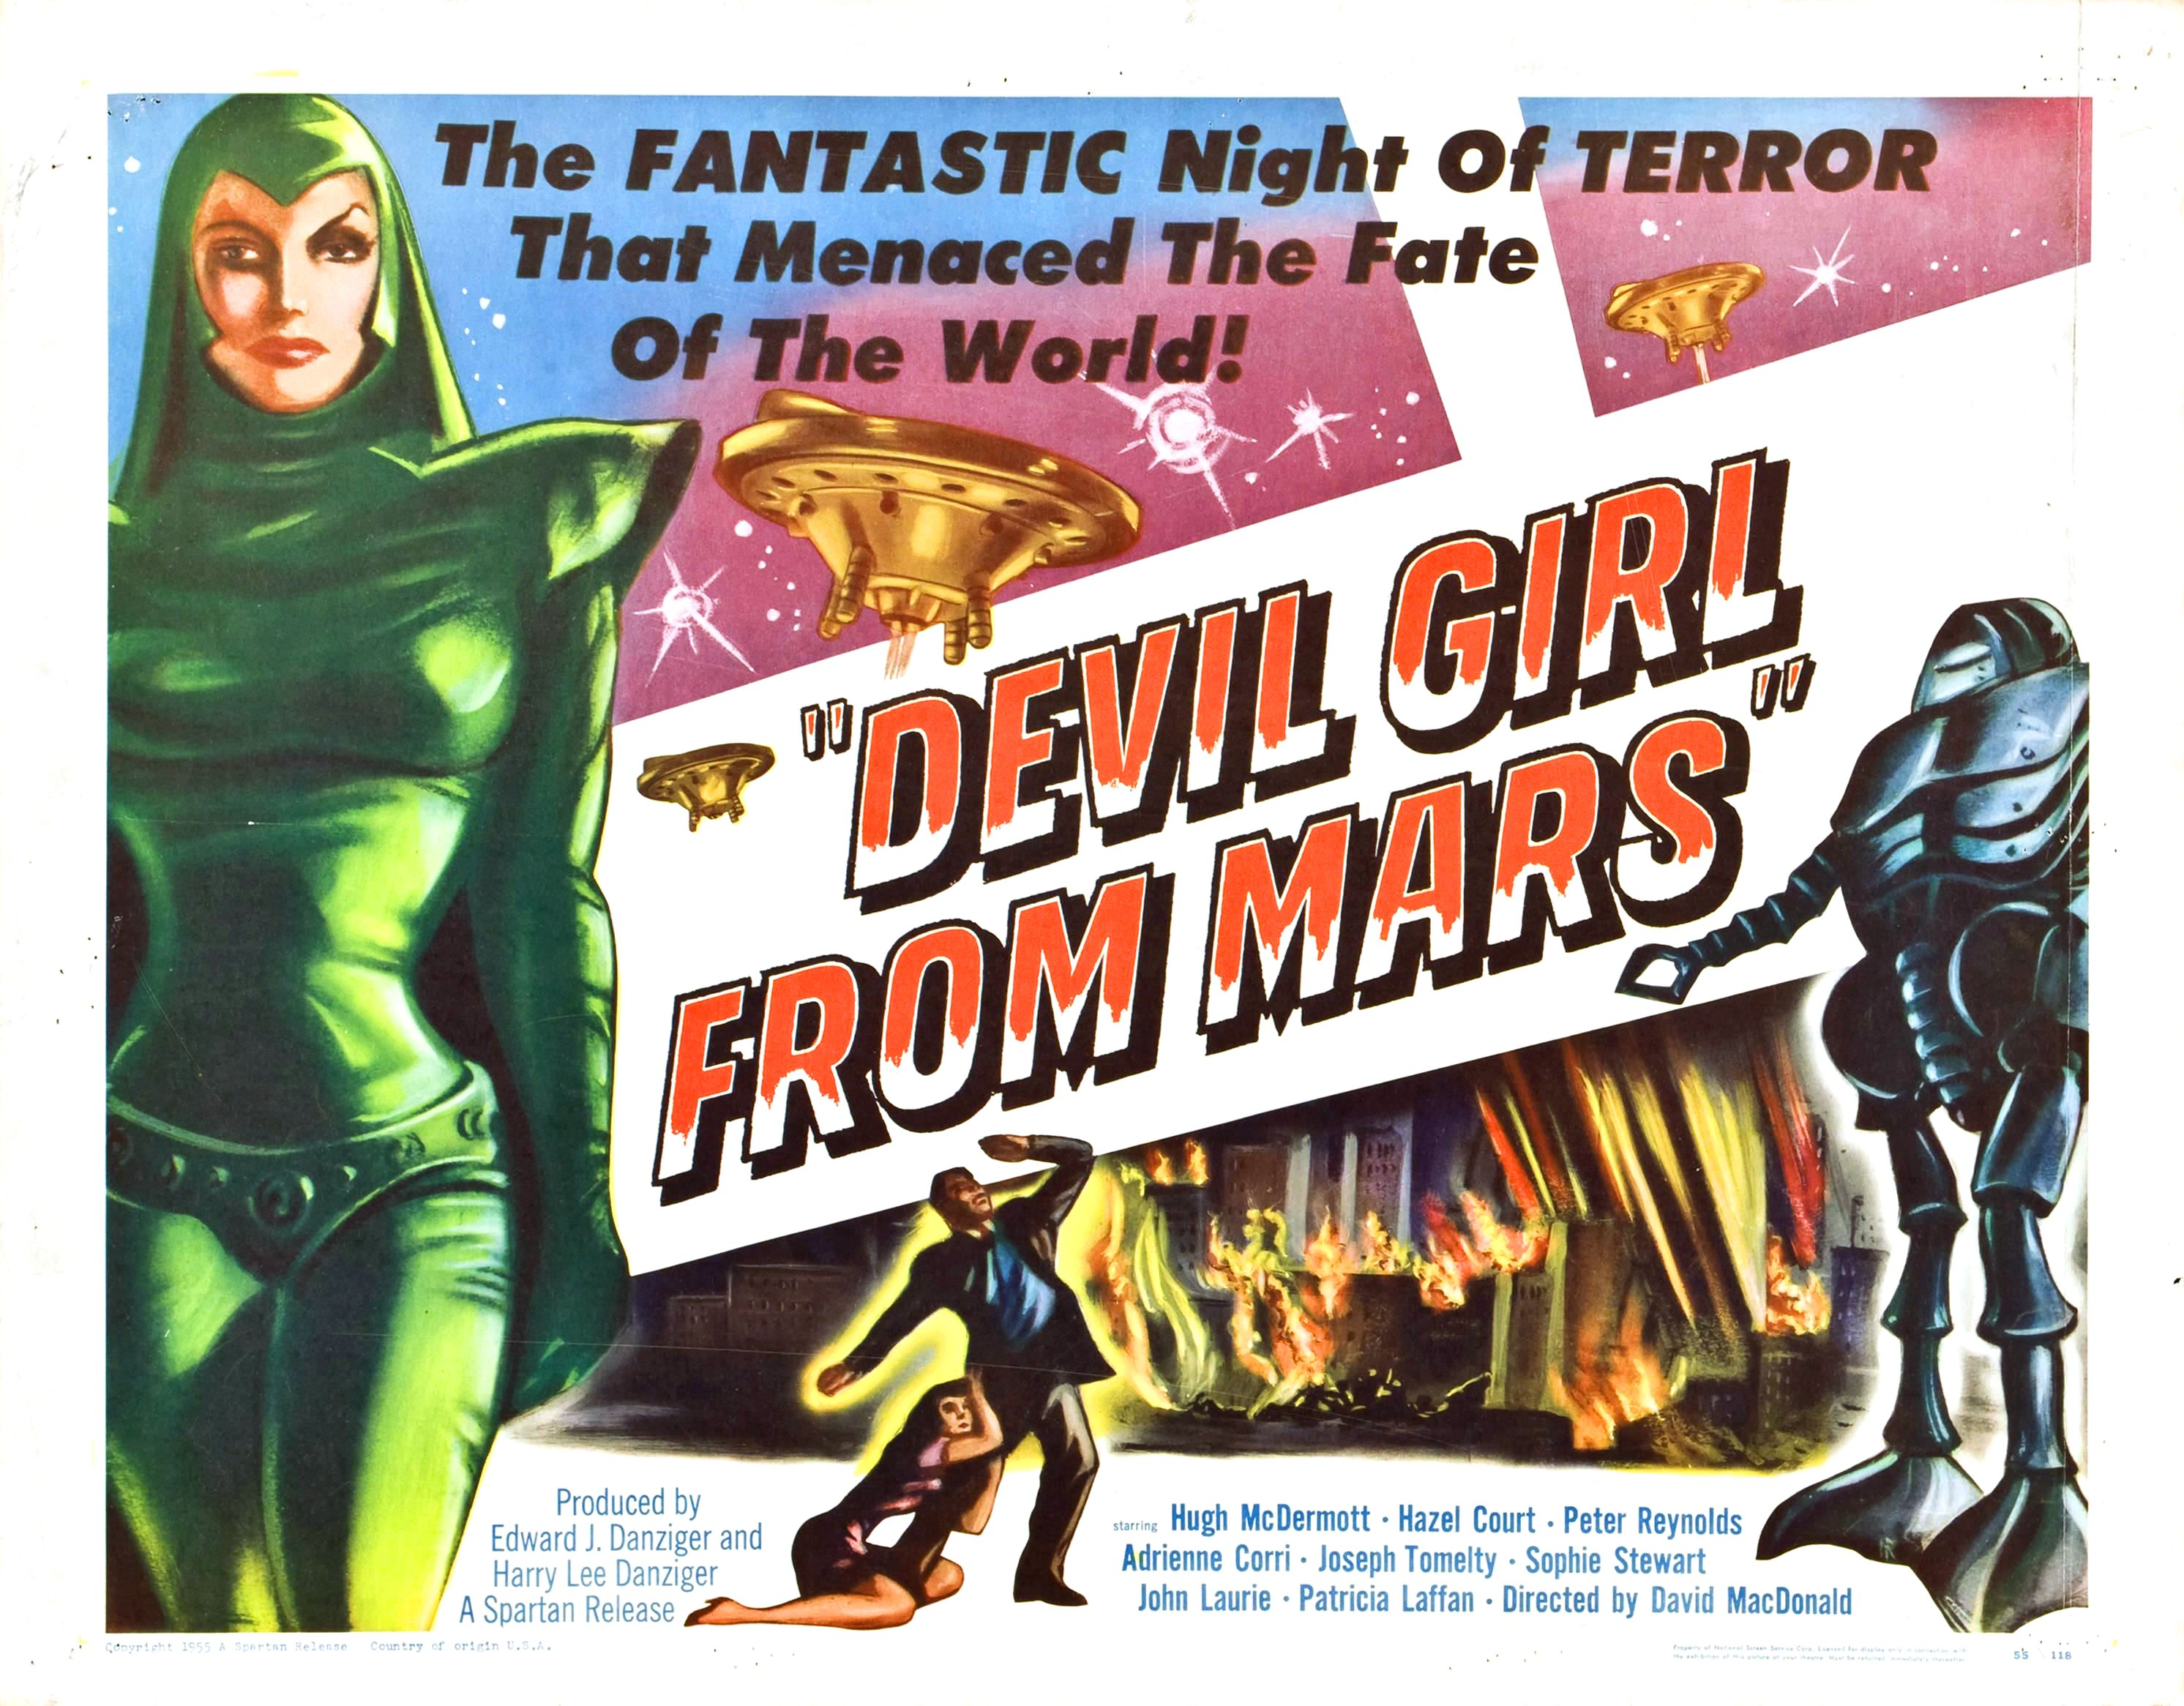 movie with girls from mars - photo #1